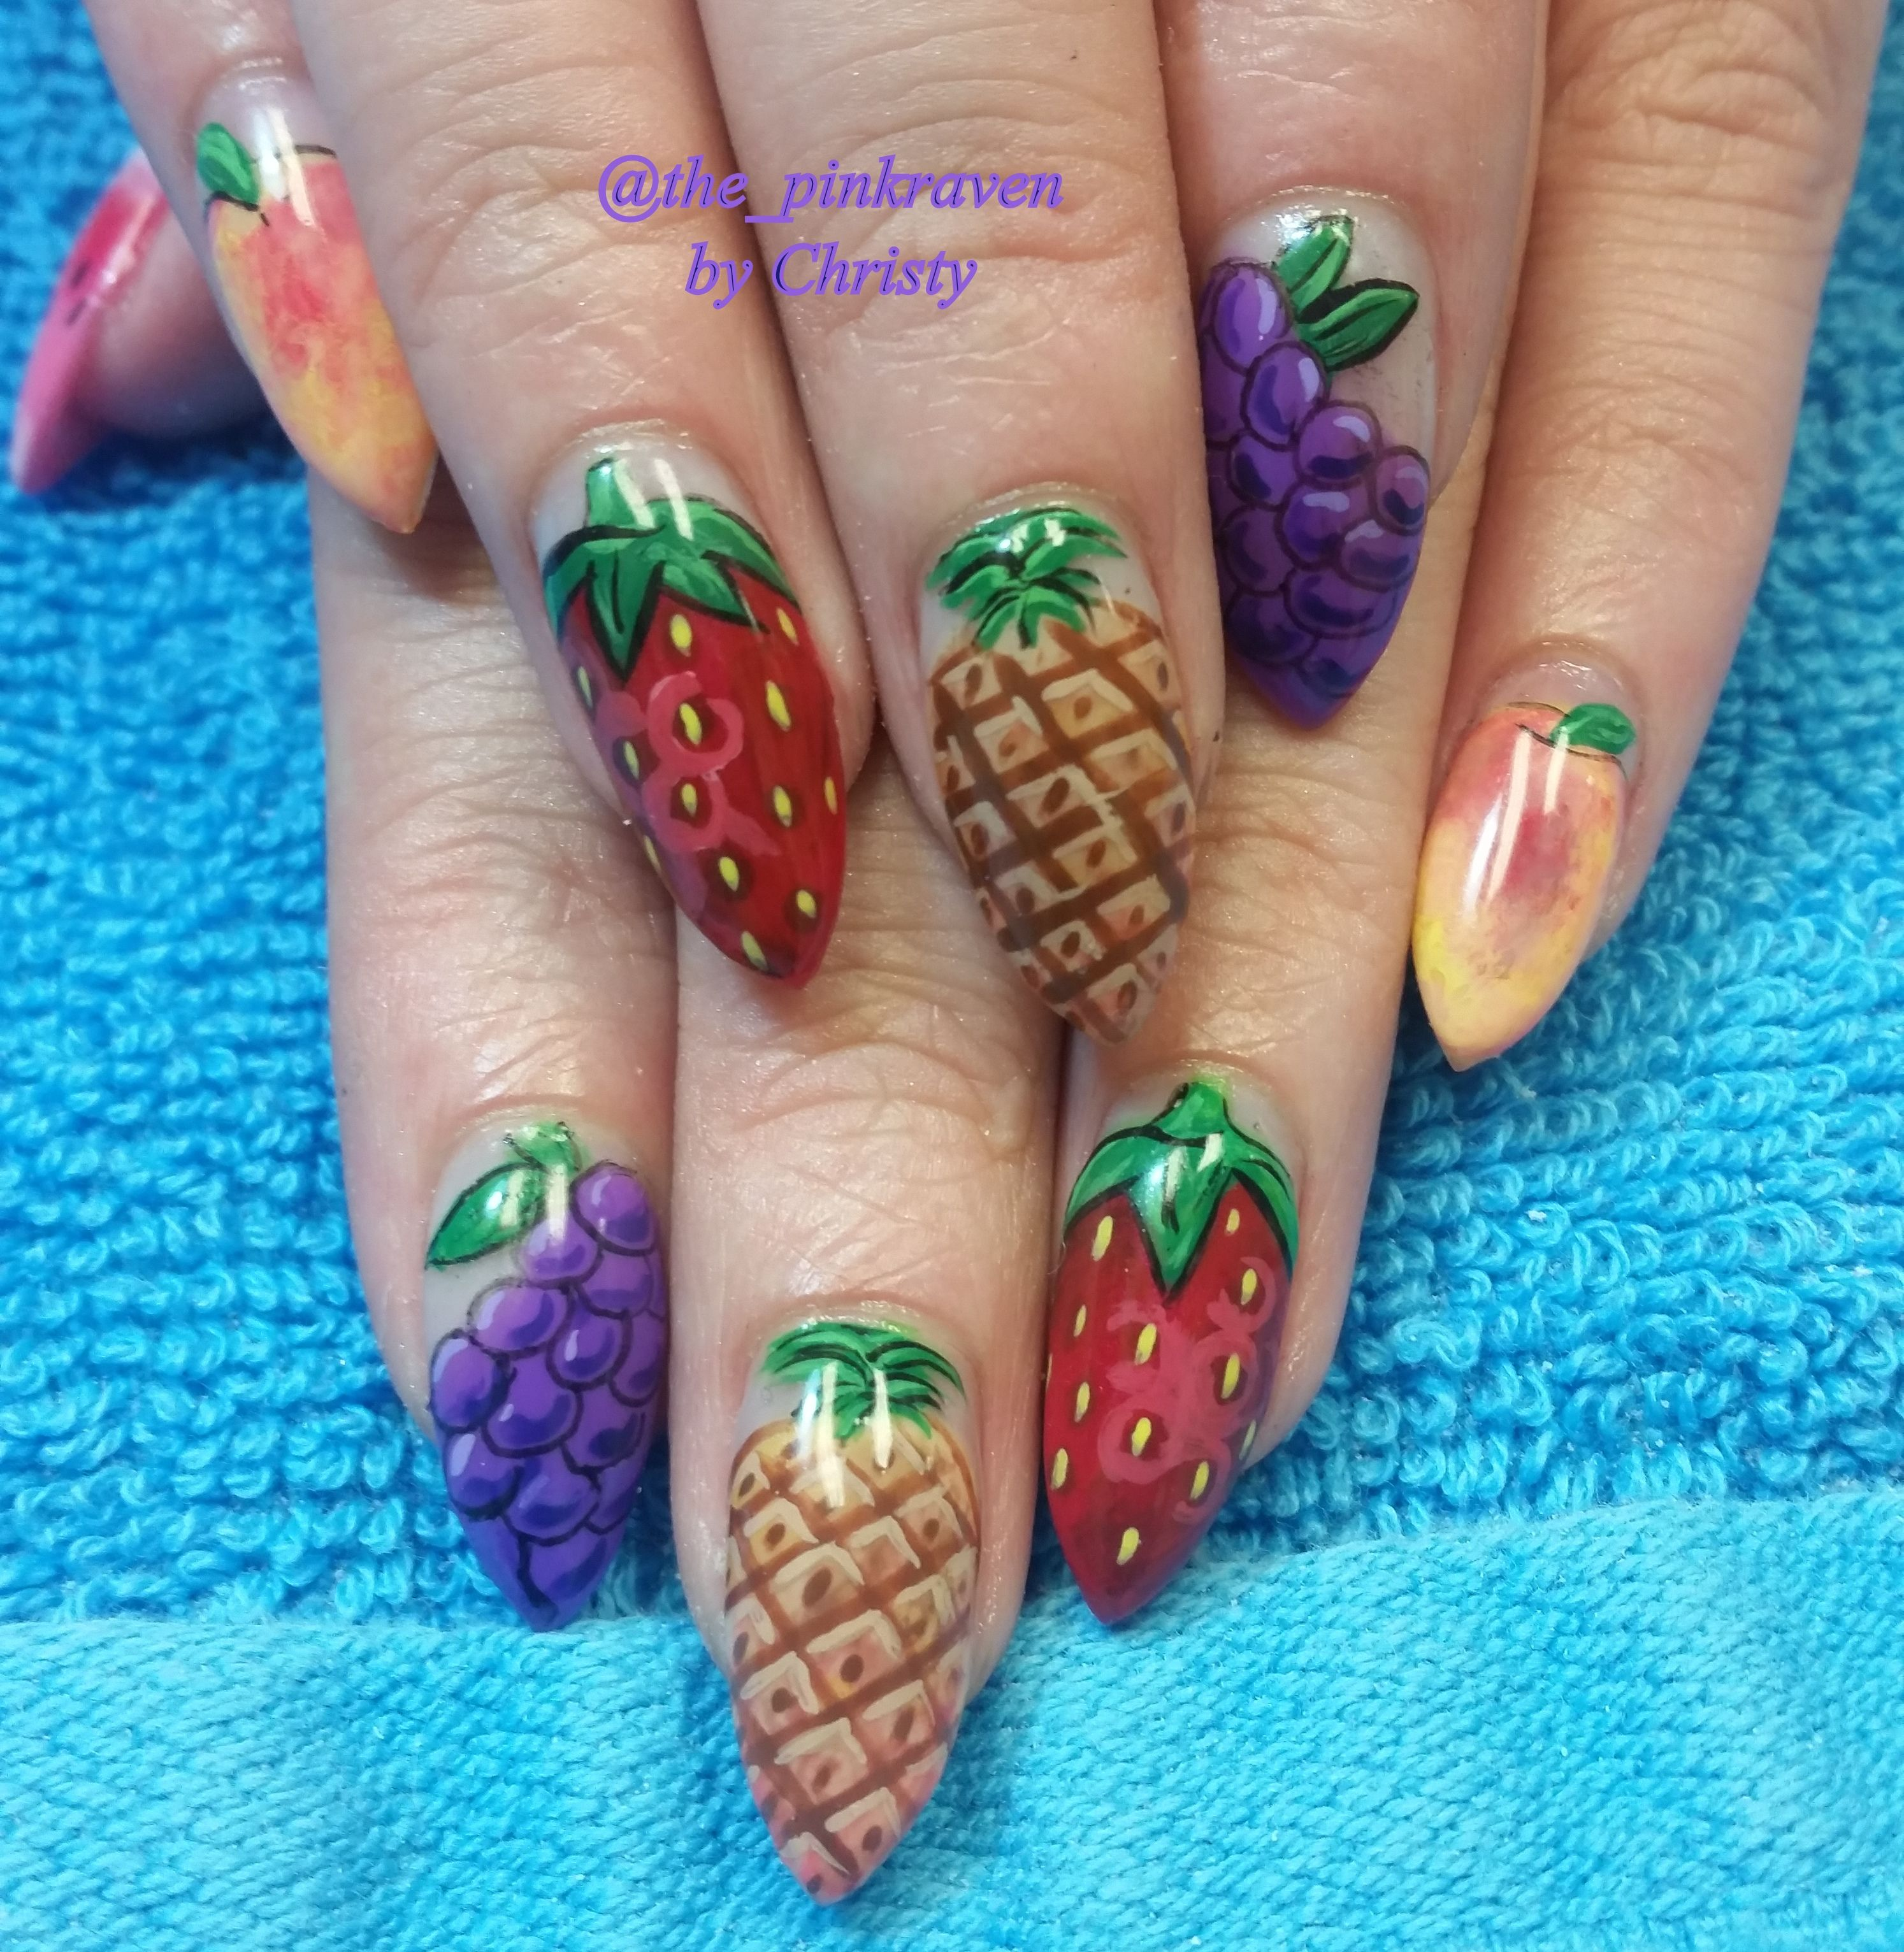 Fruit nail art pink raven strawberries grapes peaches watermelon pineapple handpainted